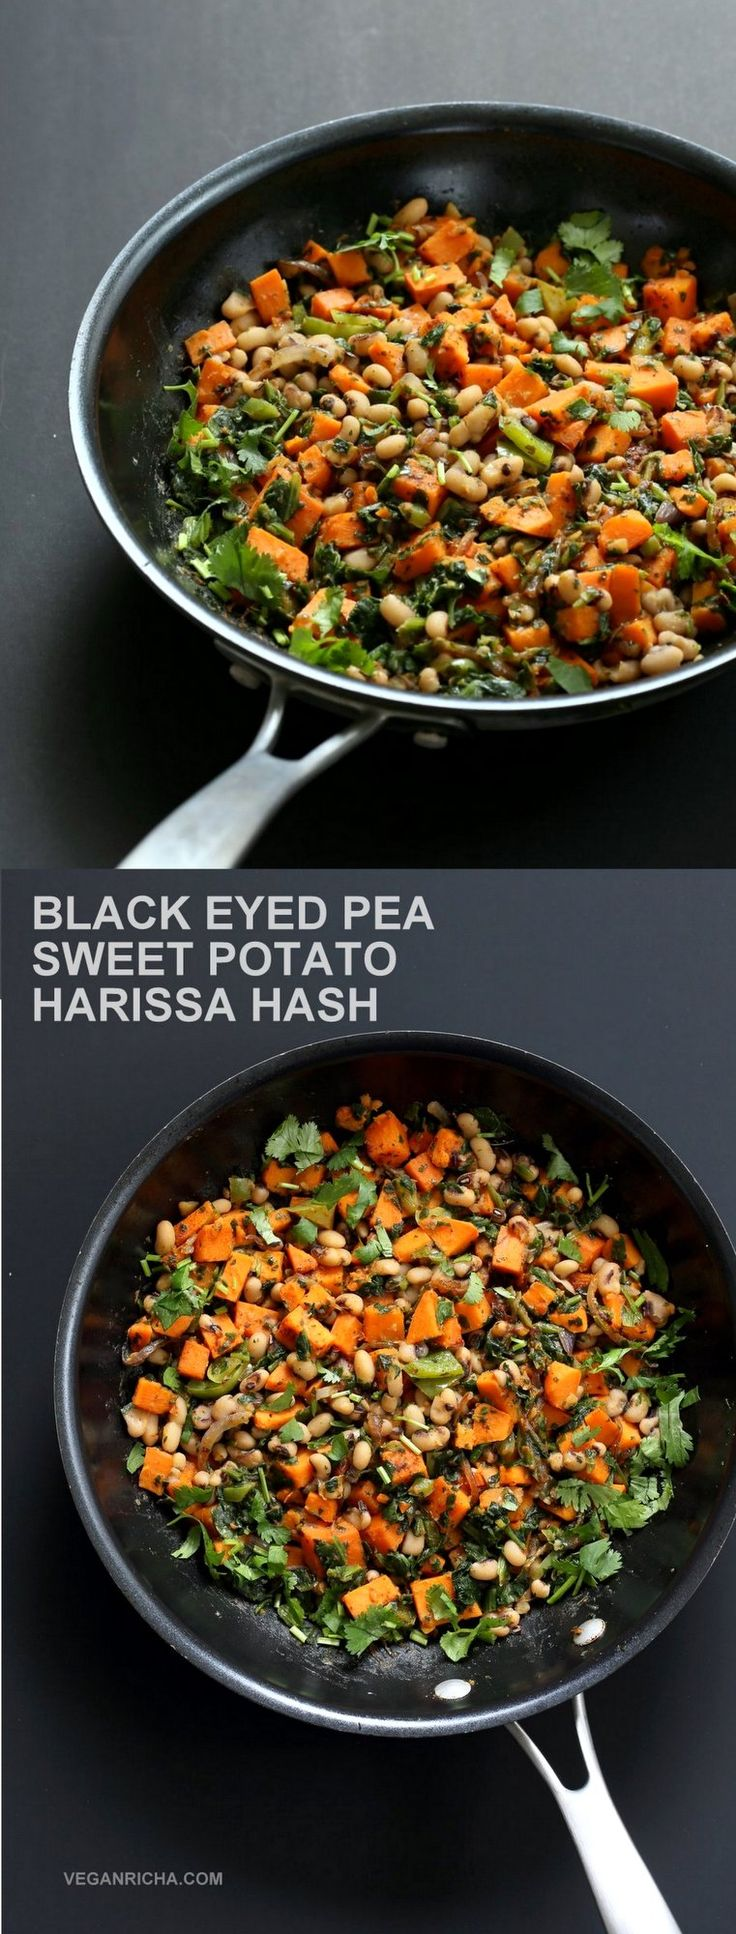 Black Eyed Pea + Sweet Potato Hash with Harissa Spice. #Vegan #Glutenfree #Soyfree